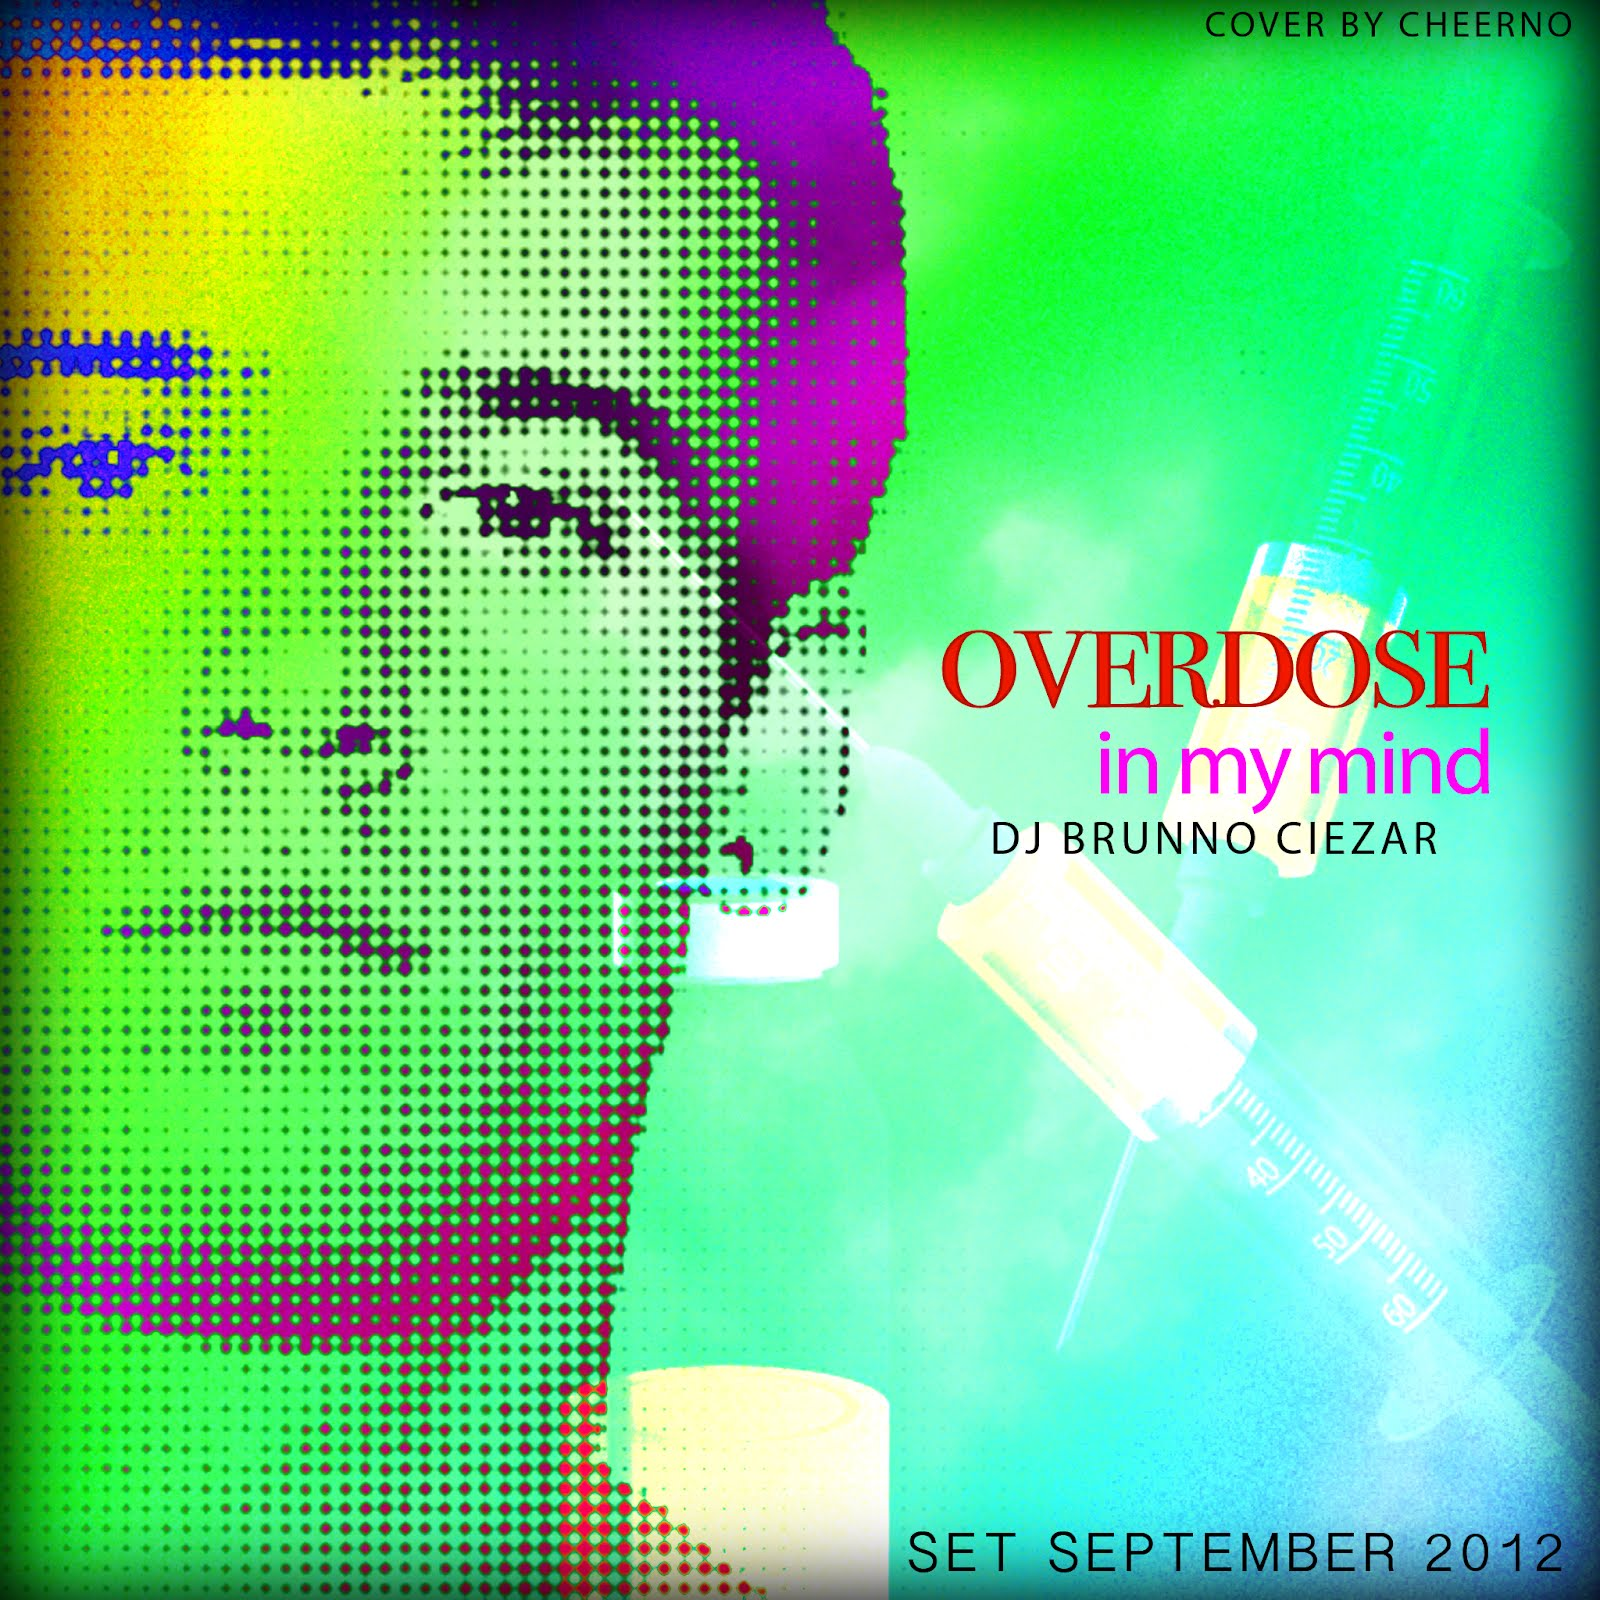 DJ Brunno Ciezar - OVERDOSE In My Mind